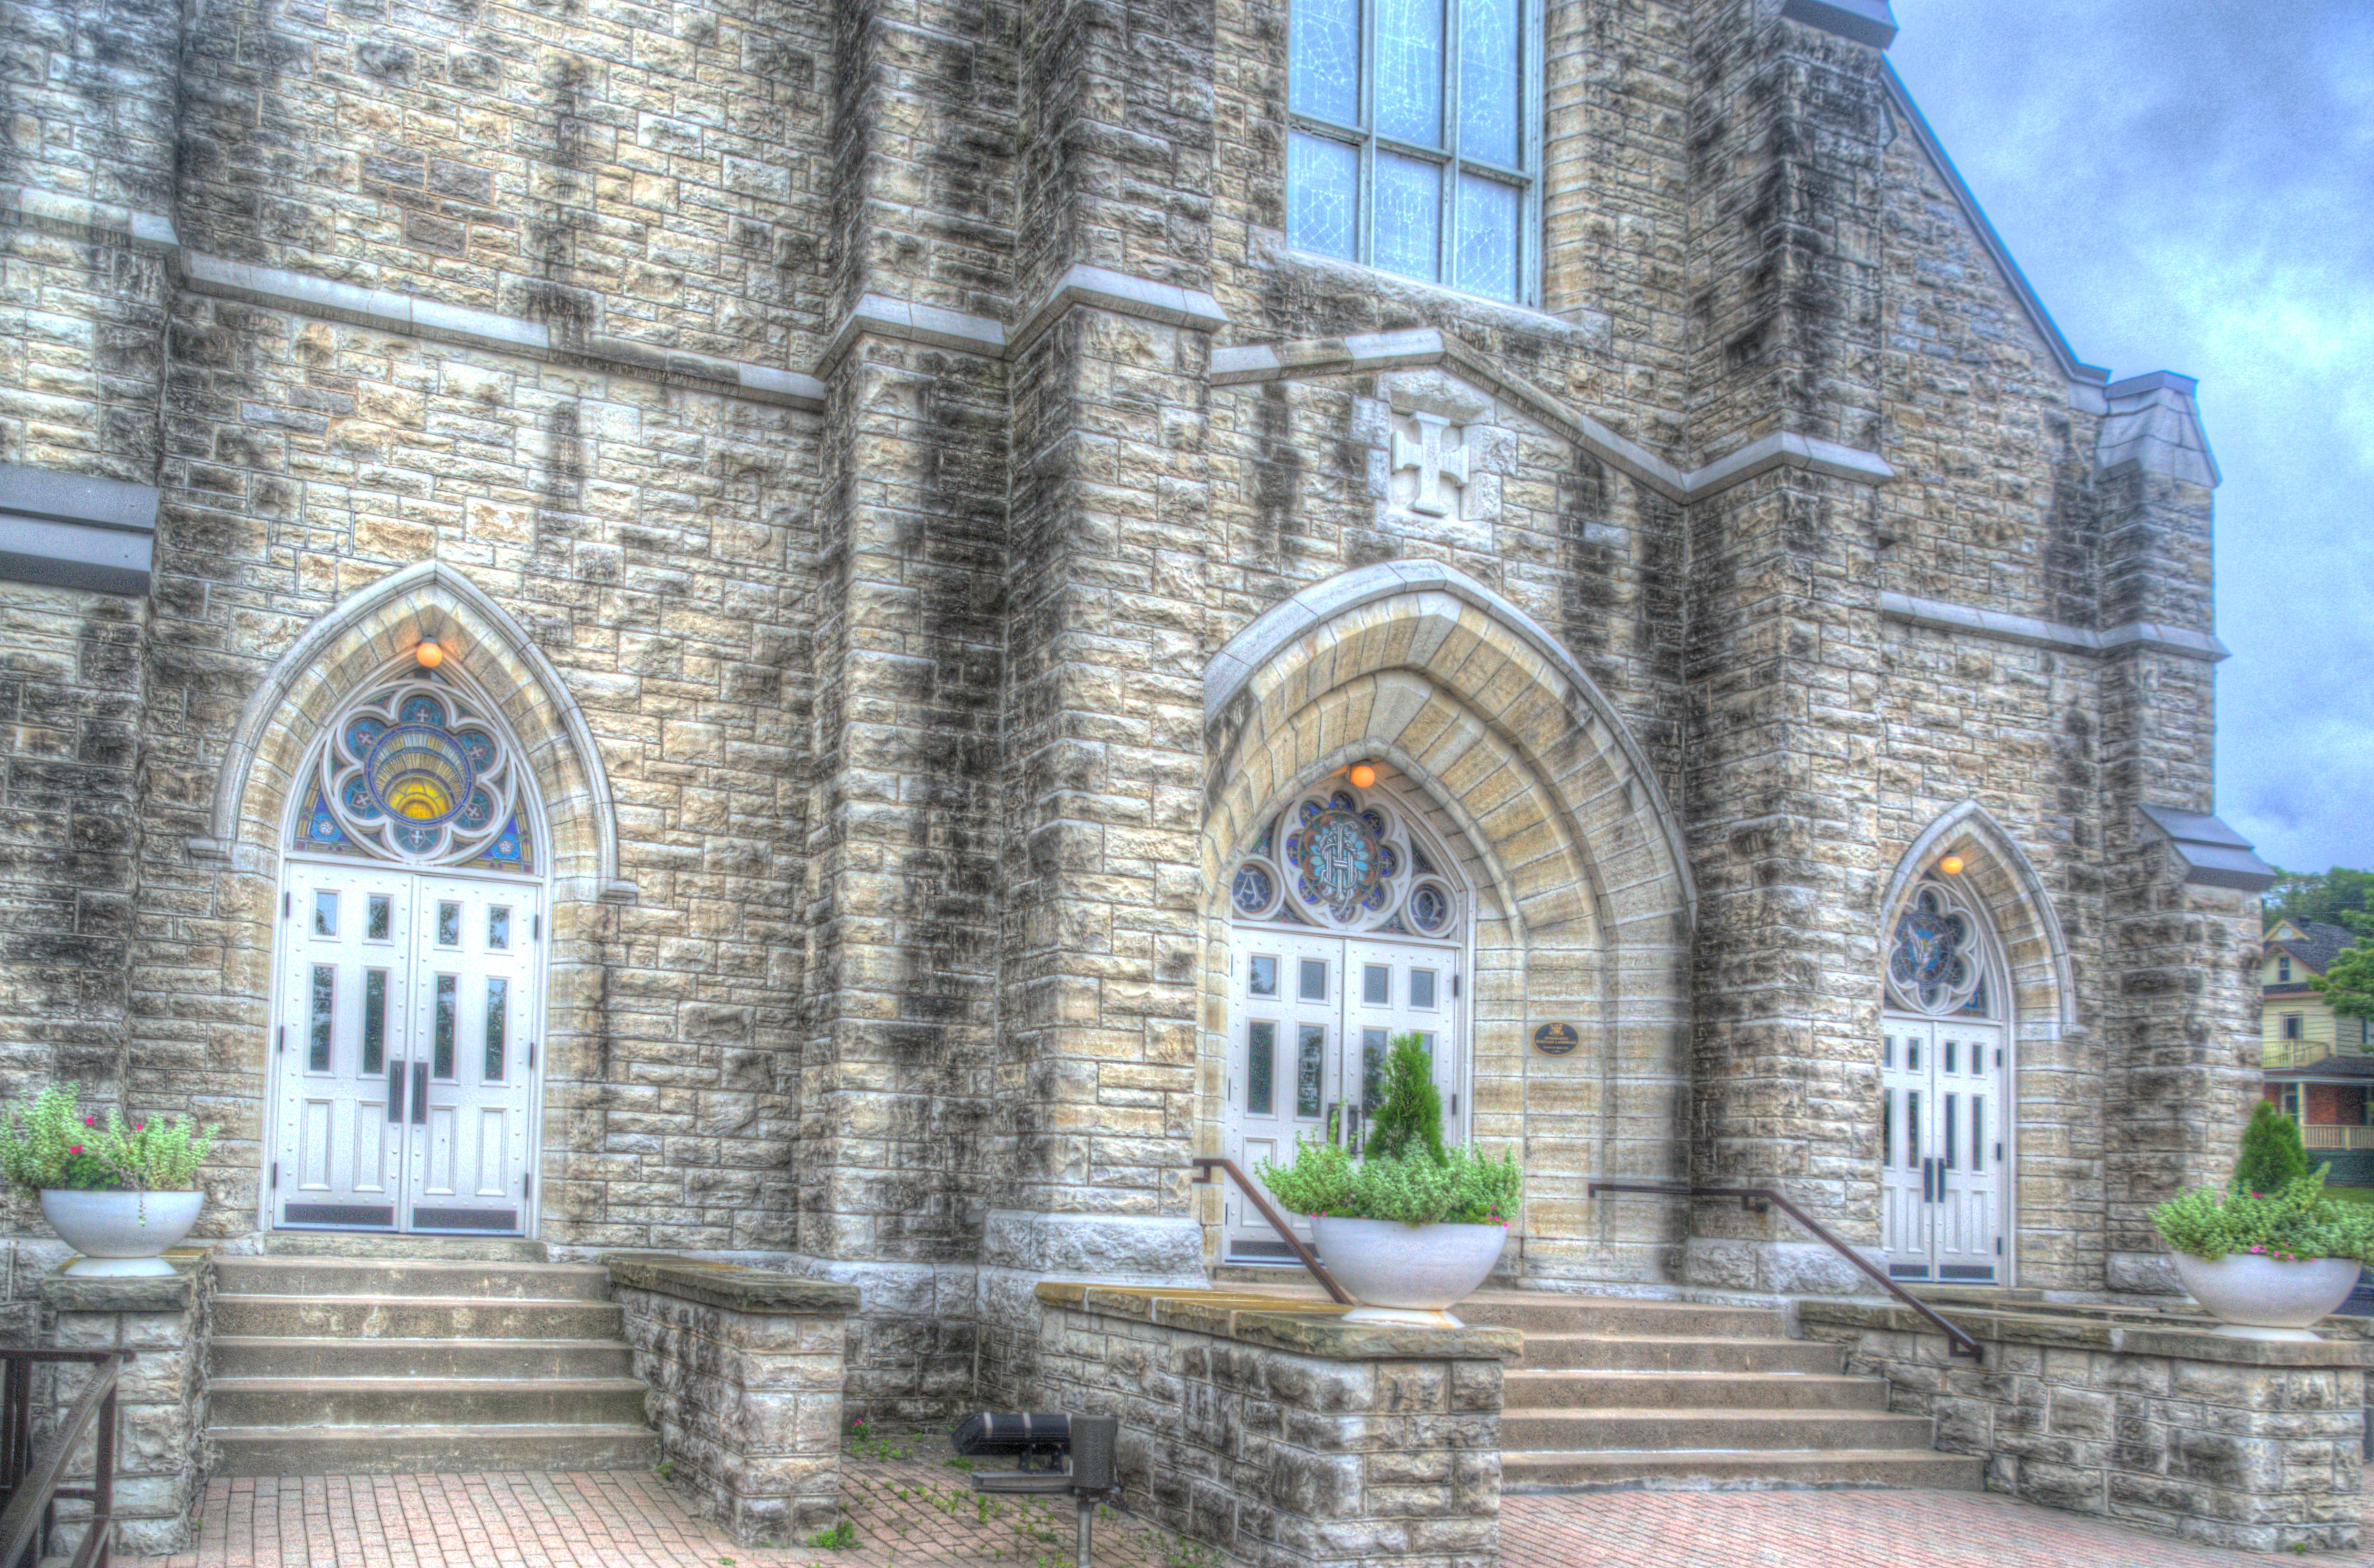 Outside image of St. Margaret's beautiful front doors with a stain glass above the doors.